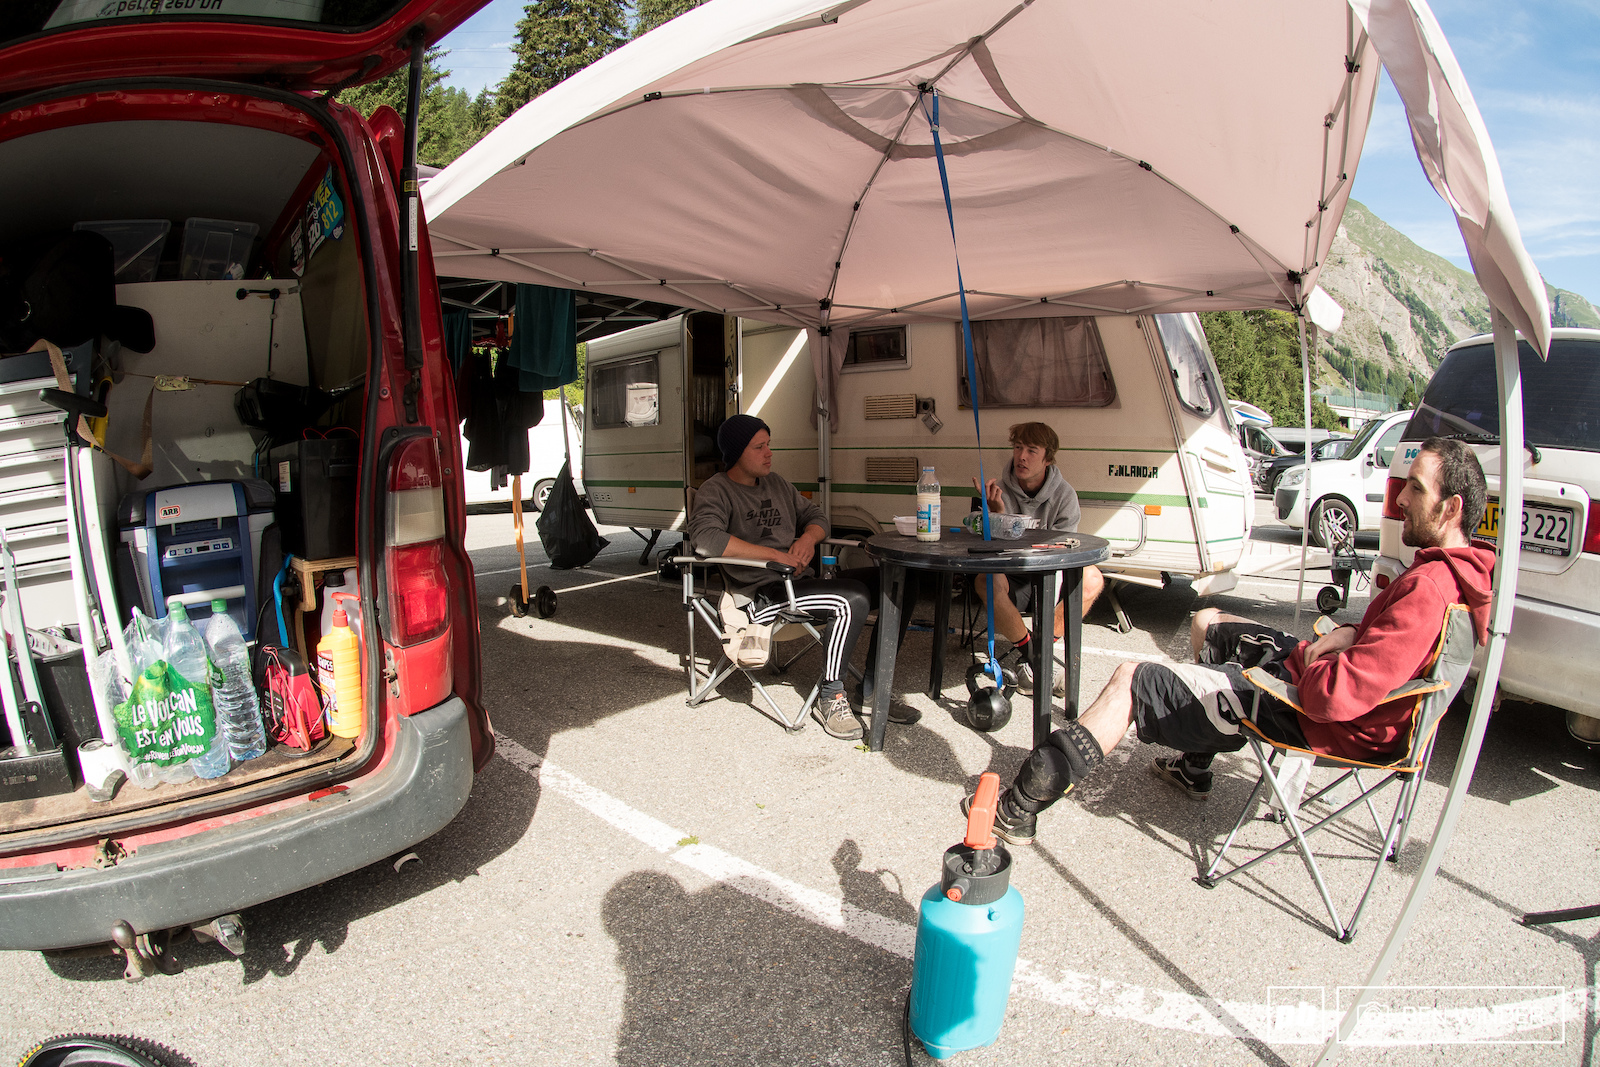 Fred Leth and Bob Bertelsen are from Denmark and have a pretty sweet set up in the car park.